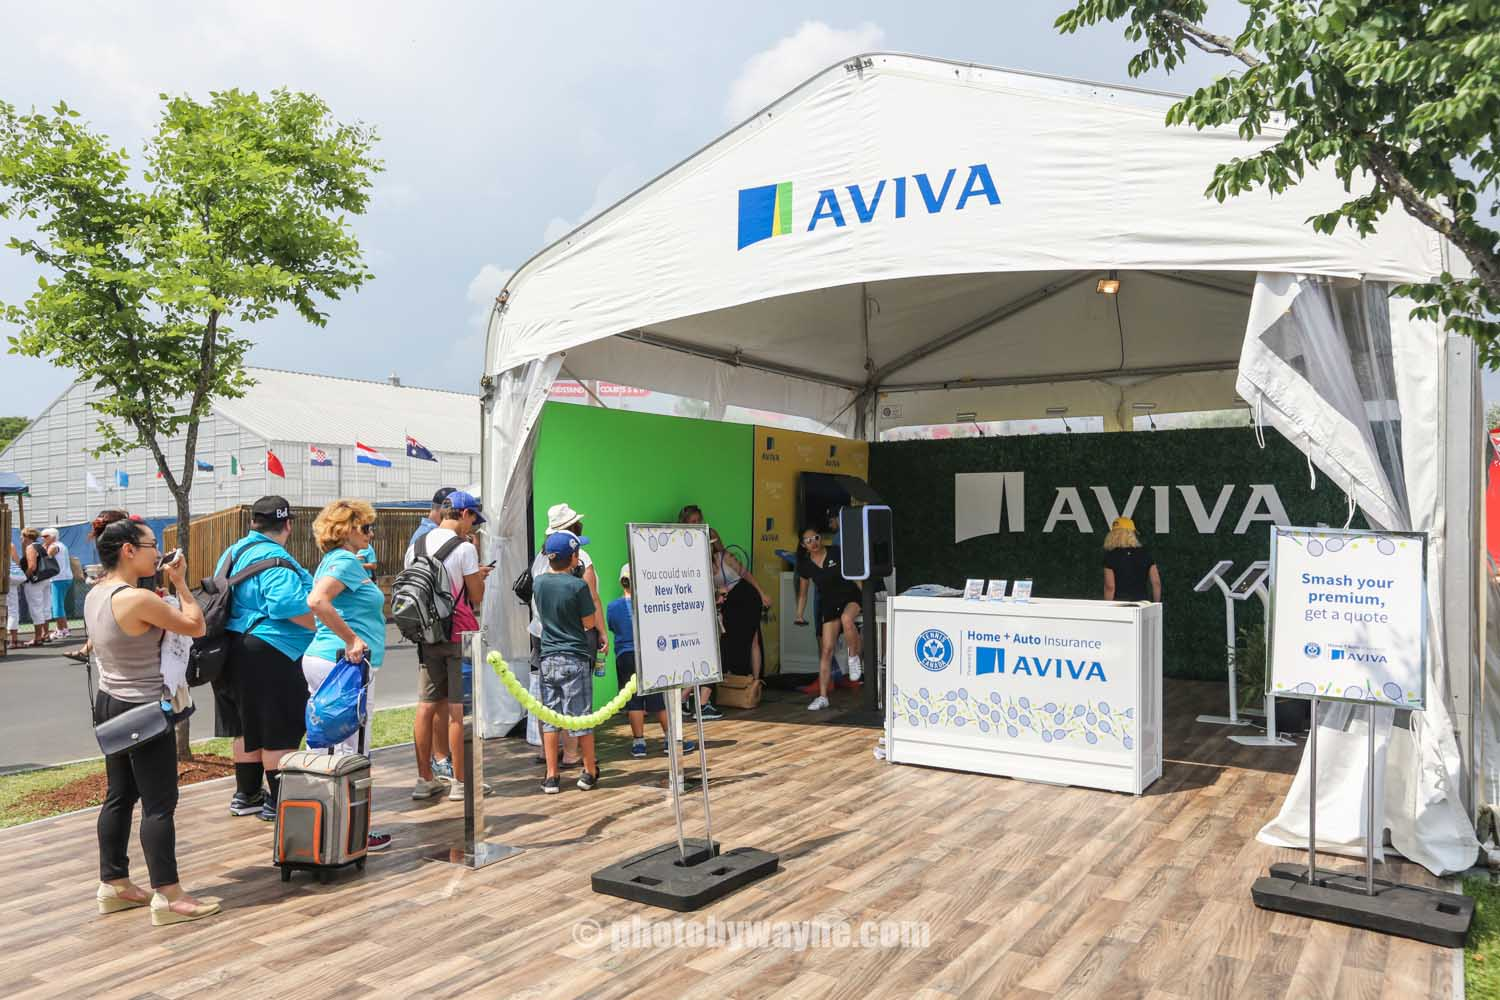 Aviva-is-a-sponsor-of-the-rogers-cup-tennis-tournament.jpg